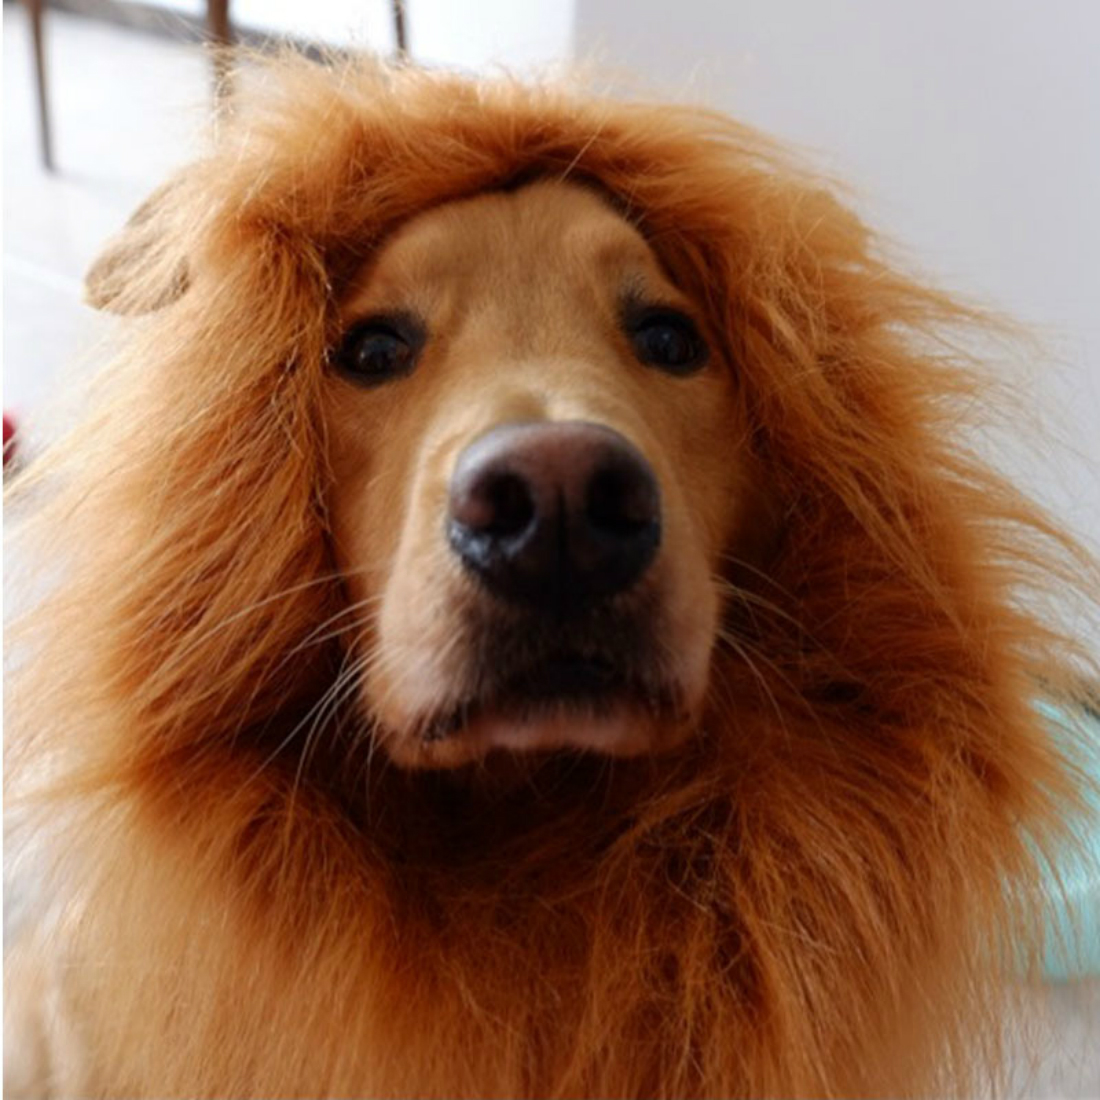 60bdcc8b6 Pet Lion Mane Wig Hat for Dog Costume Halloween Christmas Party Dress Up Lion  Mane Winter Warm Wig Cat Party Decoration With Ear